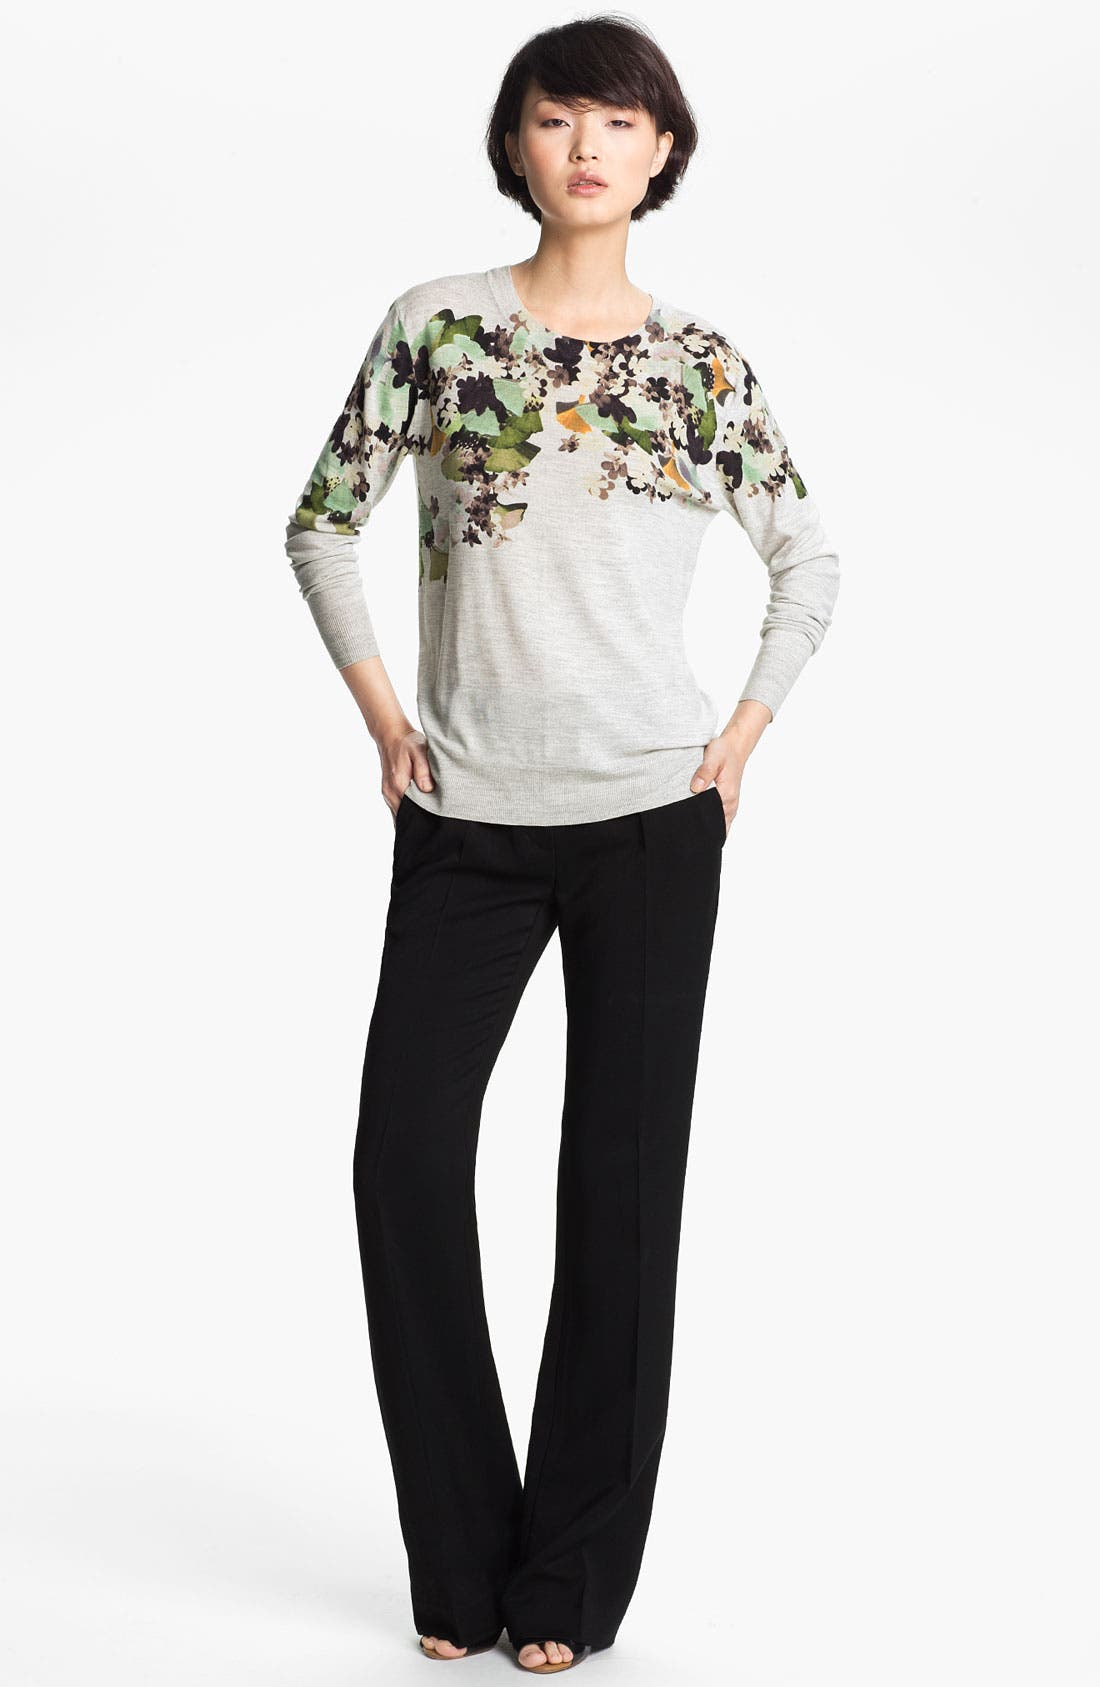 Alternate Image 1 Selected - 3.1 Phillip Lim Floral Print Sweater